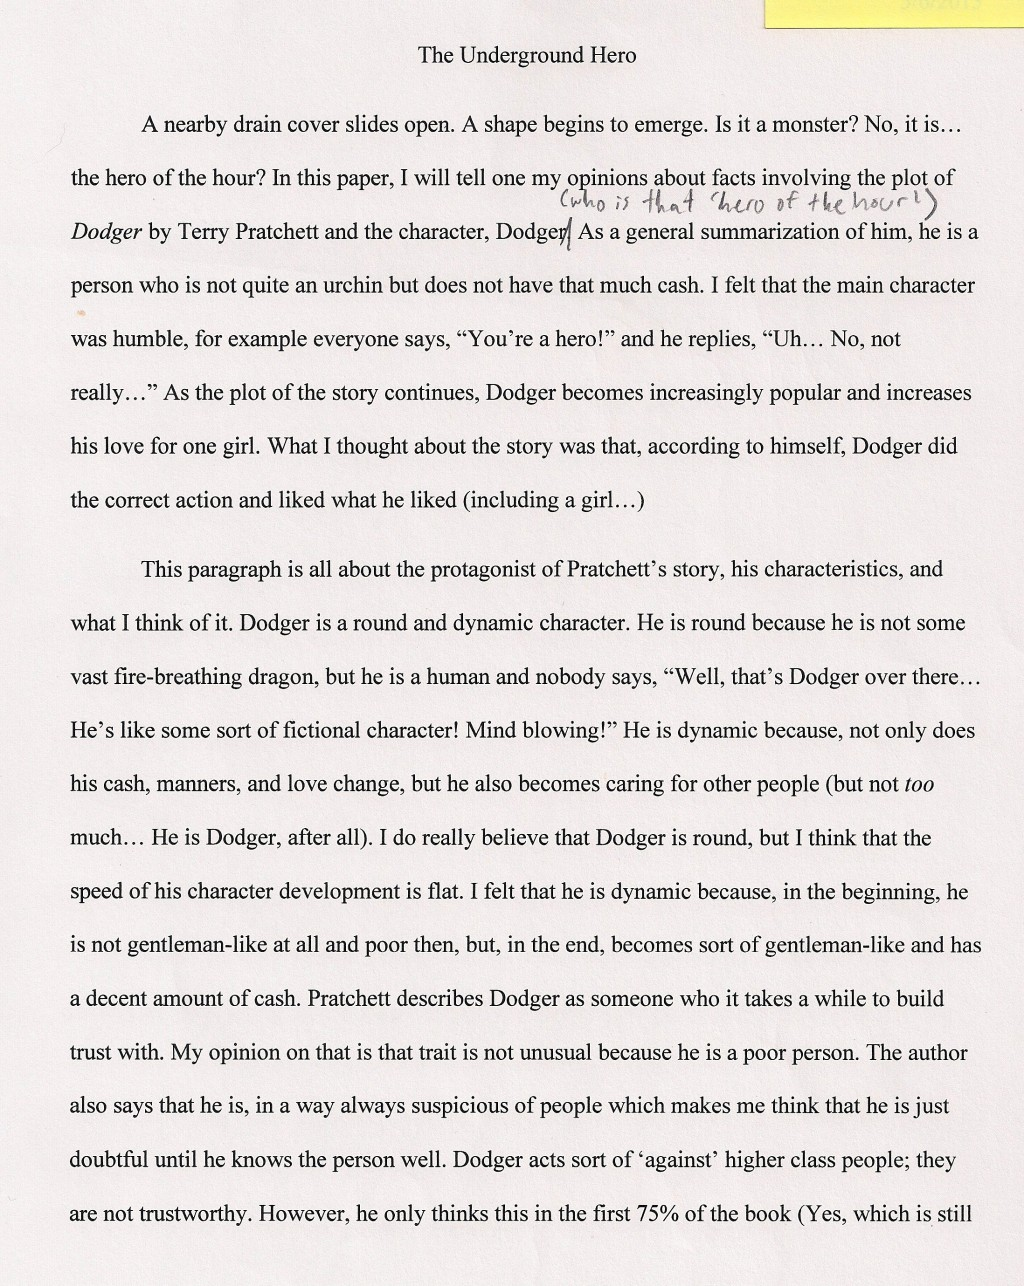 006 Unsung Heroes Essay Example The Underground Hero Fantastic Of India Intro My Mom Large